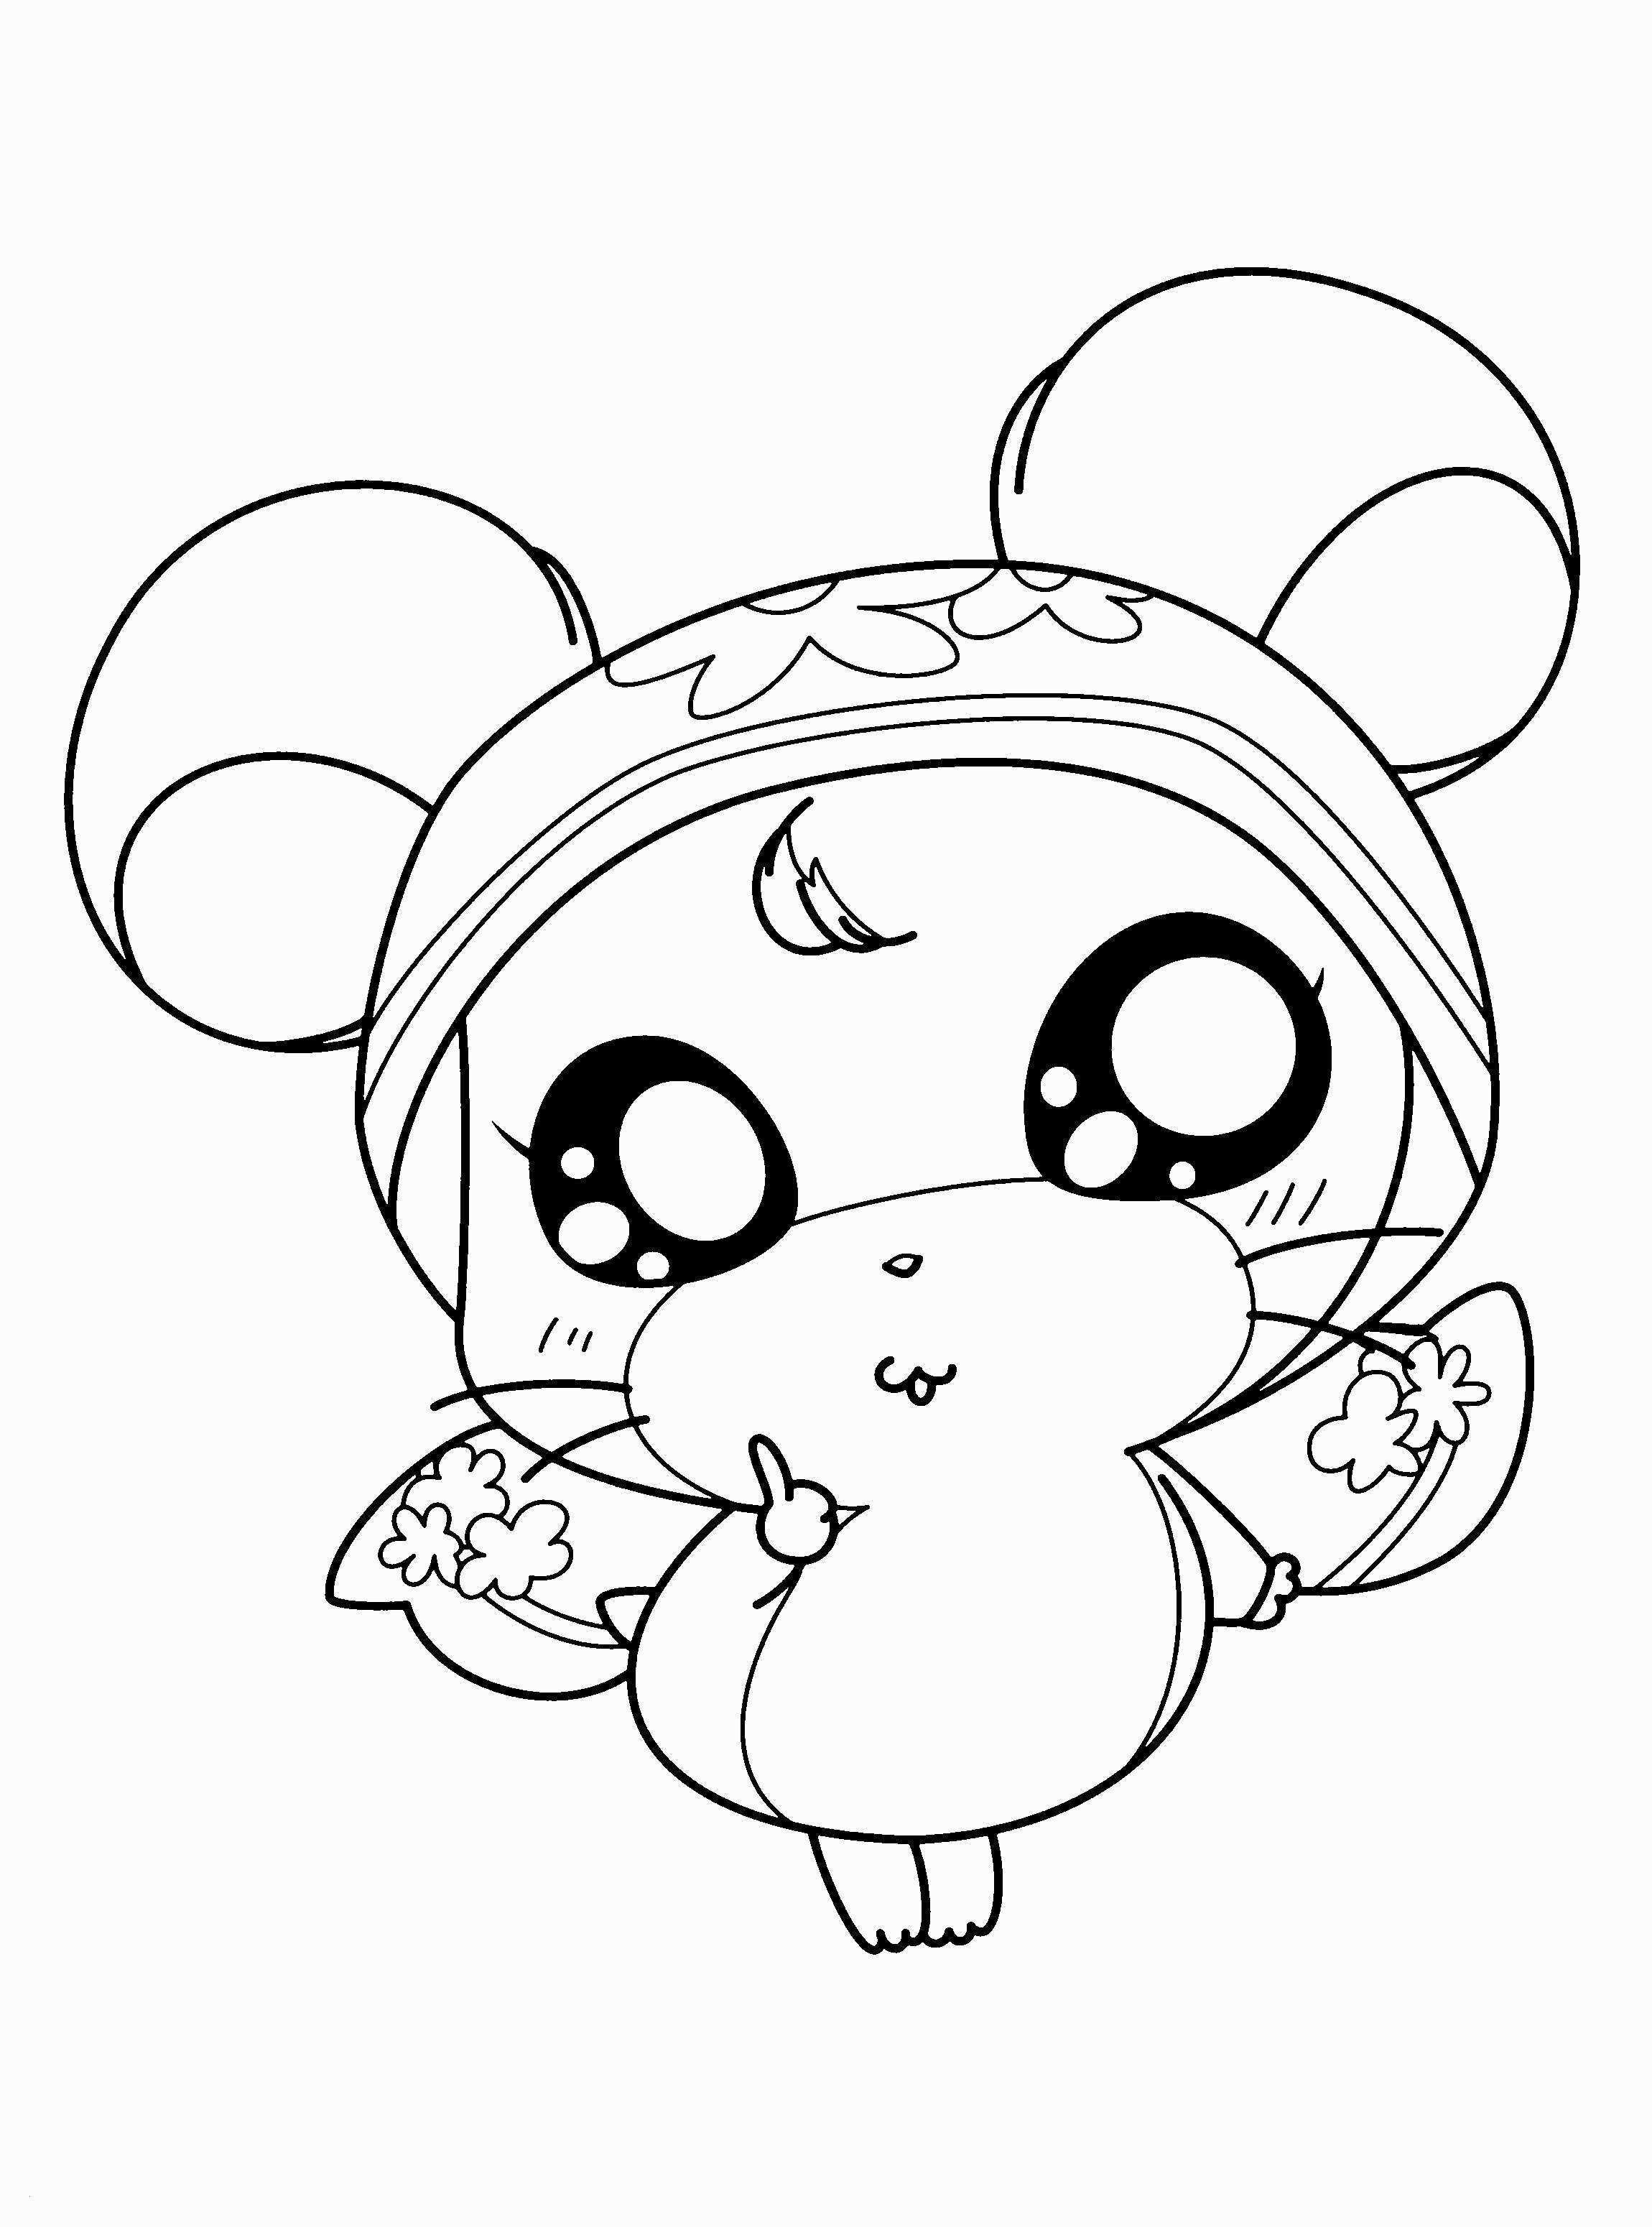 Minnie Mouse Ausmalbild Frisch Minnie Coloring Pages New 38 Minnie Ausmalbilder Scoredatscore Stock